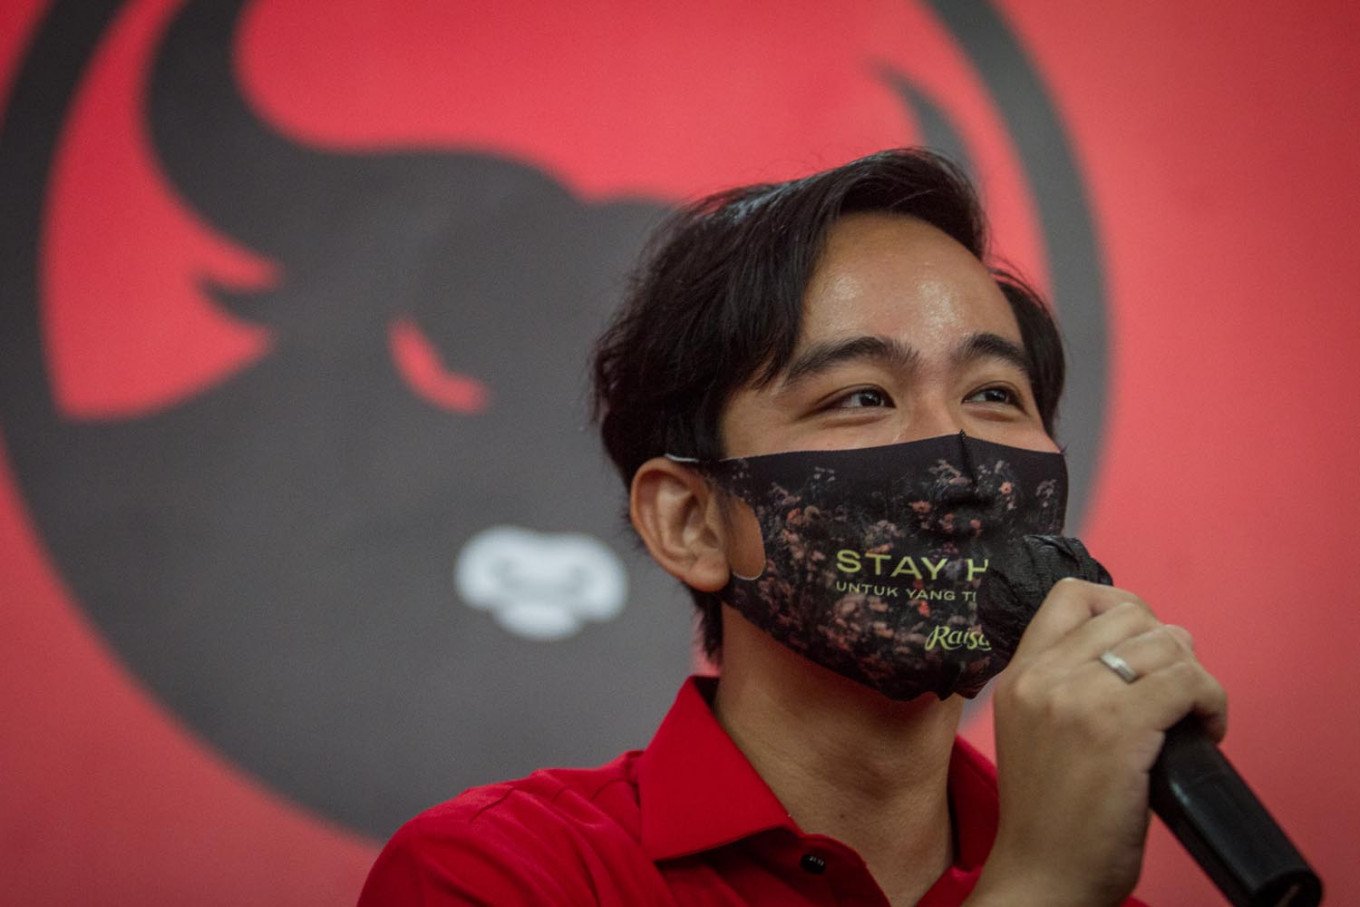 PSI, Gerindra join PDI-P in backing Jokowi's son for Surakarta mayoralty